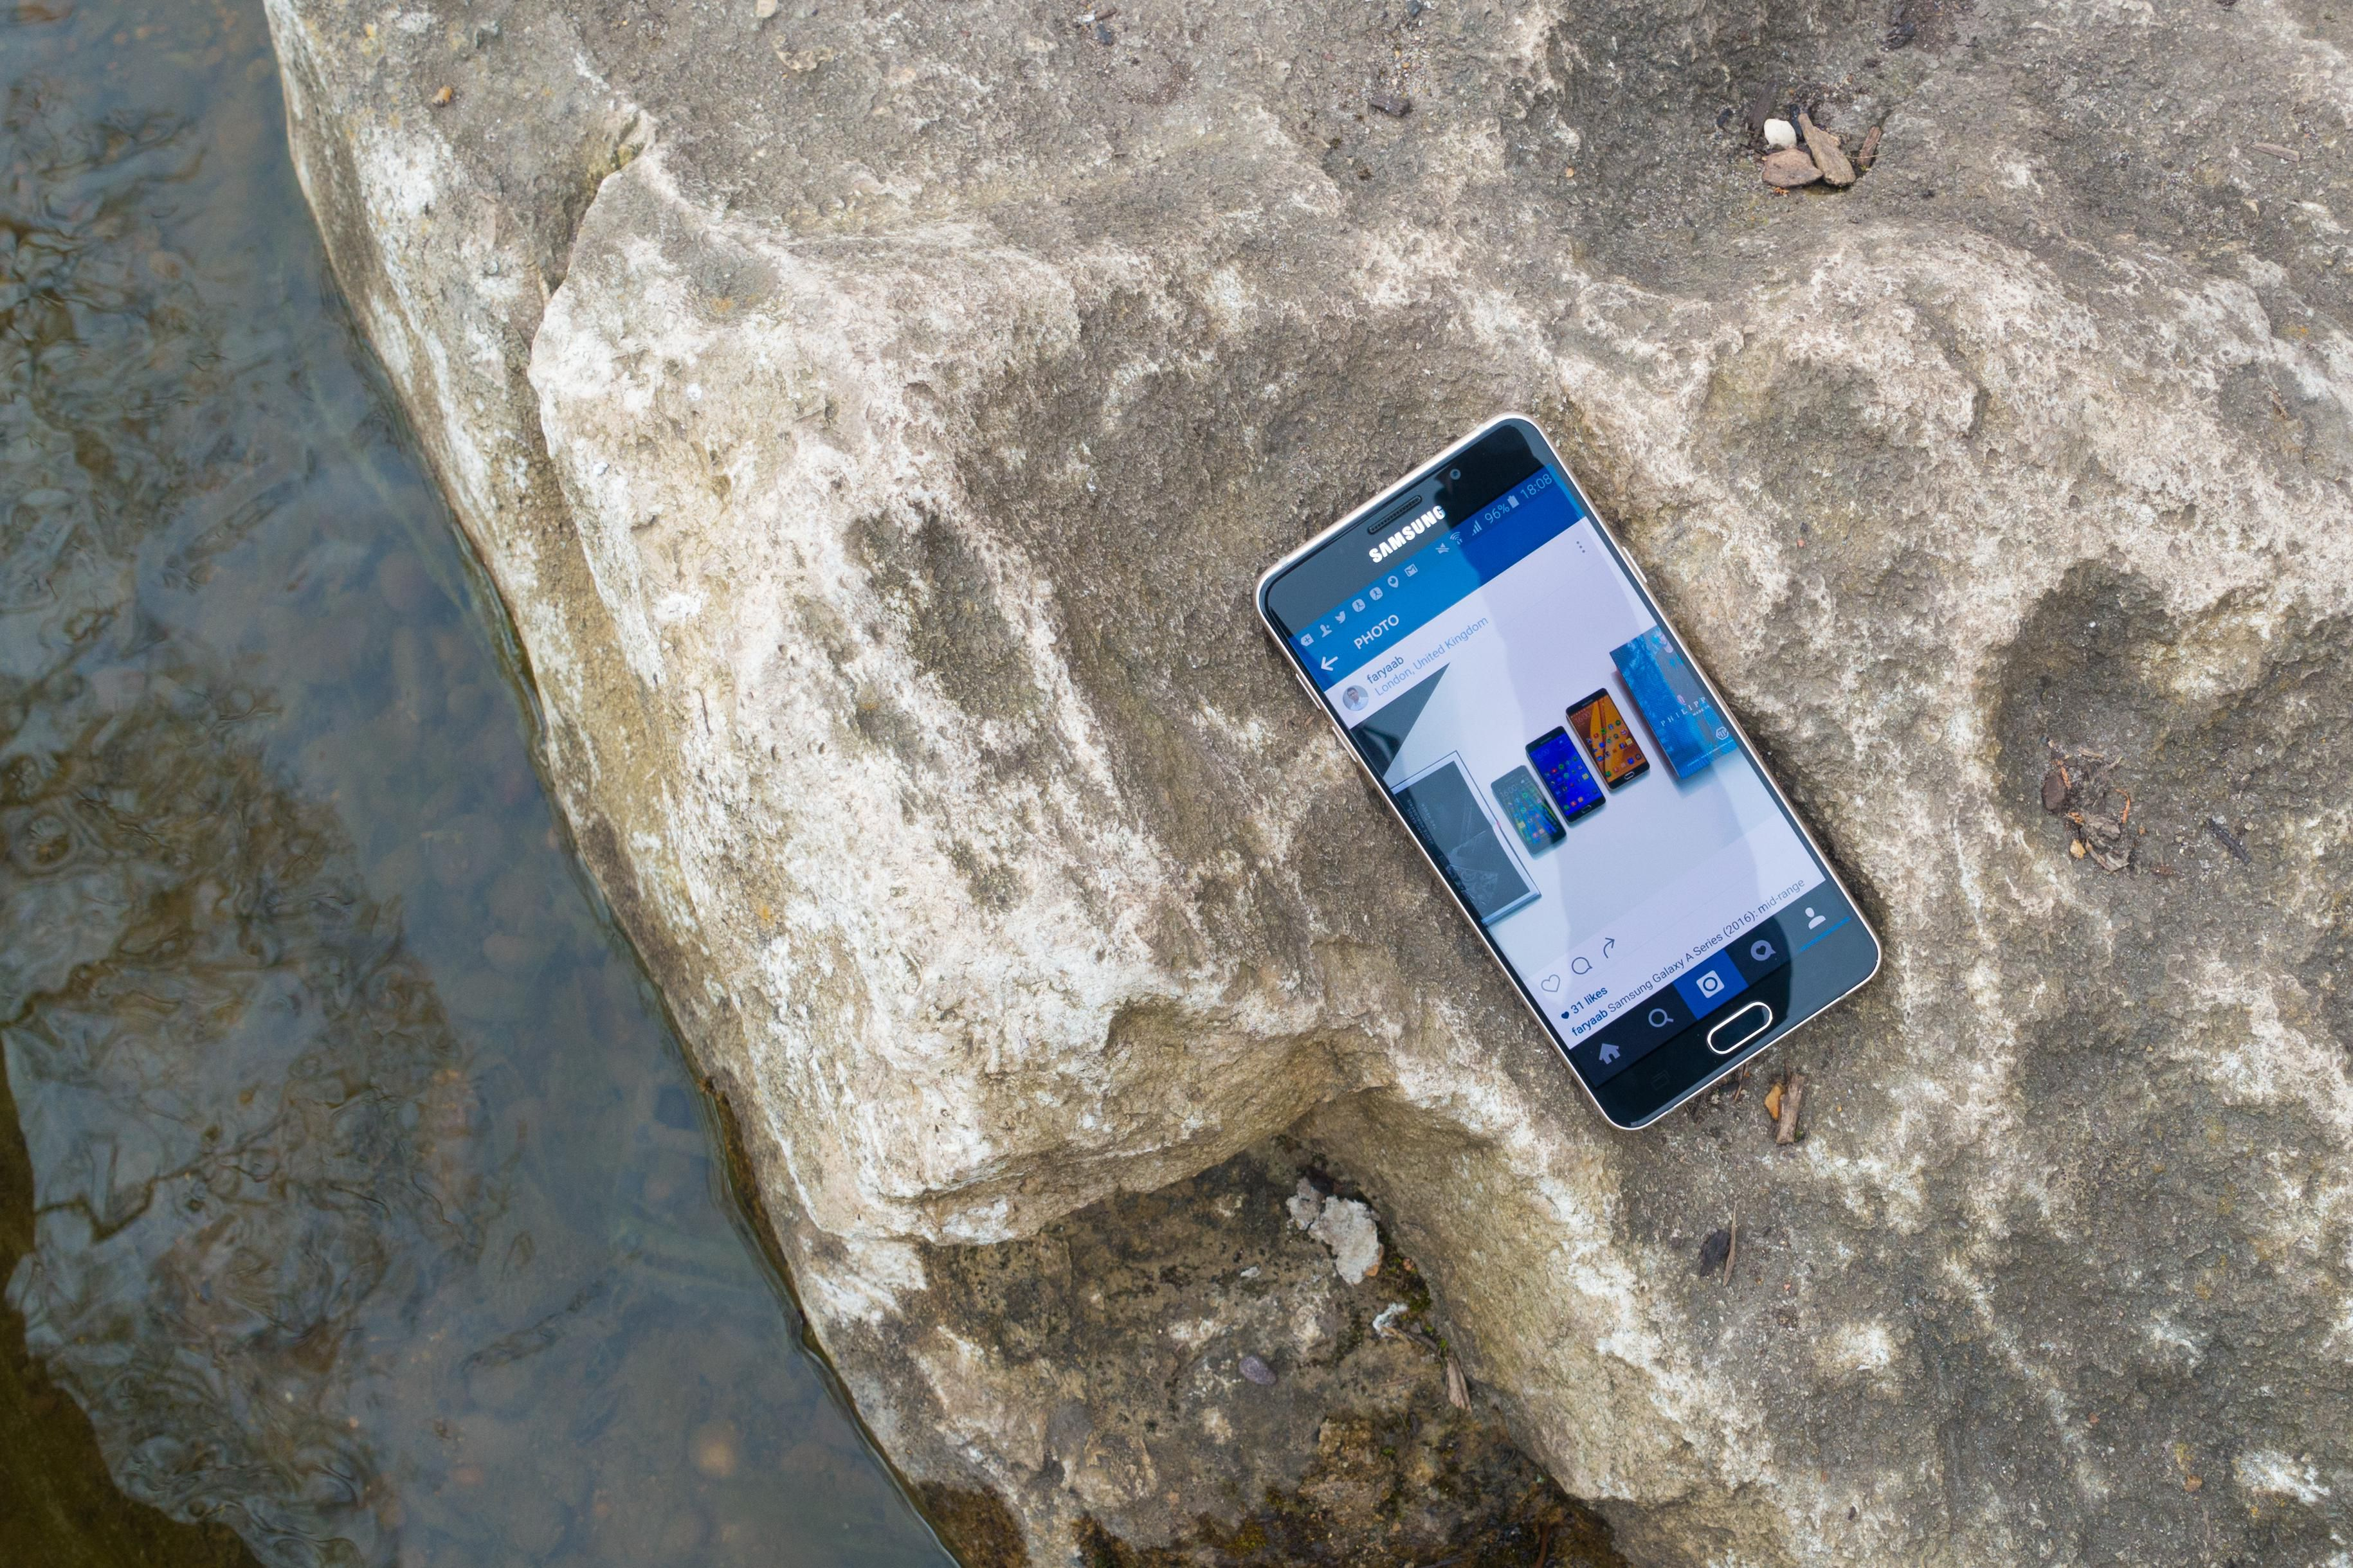 Samsung Galaxy A 2016 Series Review Mid Range S6s A5 New Sm Ram 2 Memori 16gb The A3 Doesnt Come With Dual Band Wi Fi Support And While A7 Do They Are Limited To 80211n Speeds